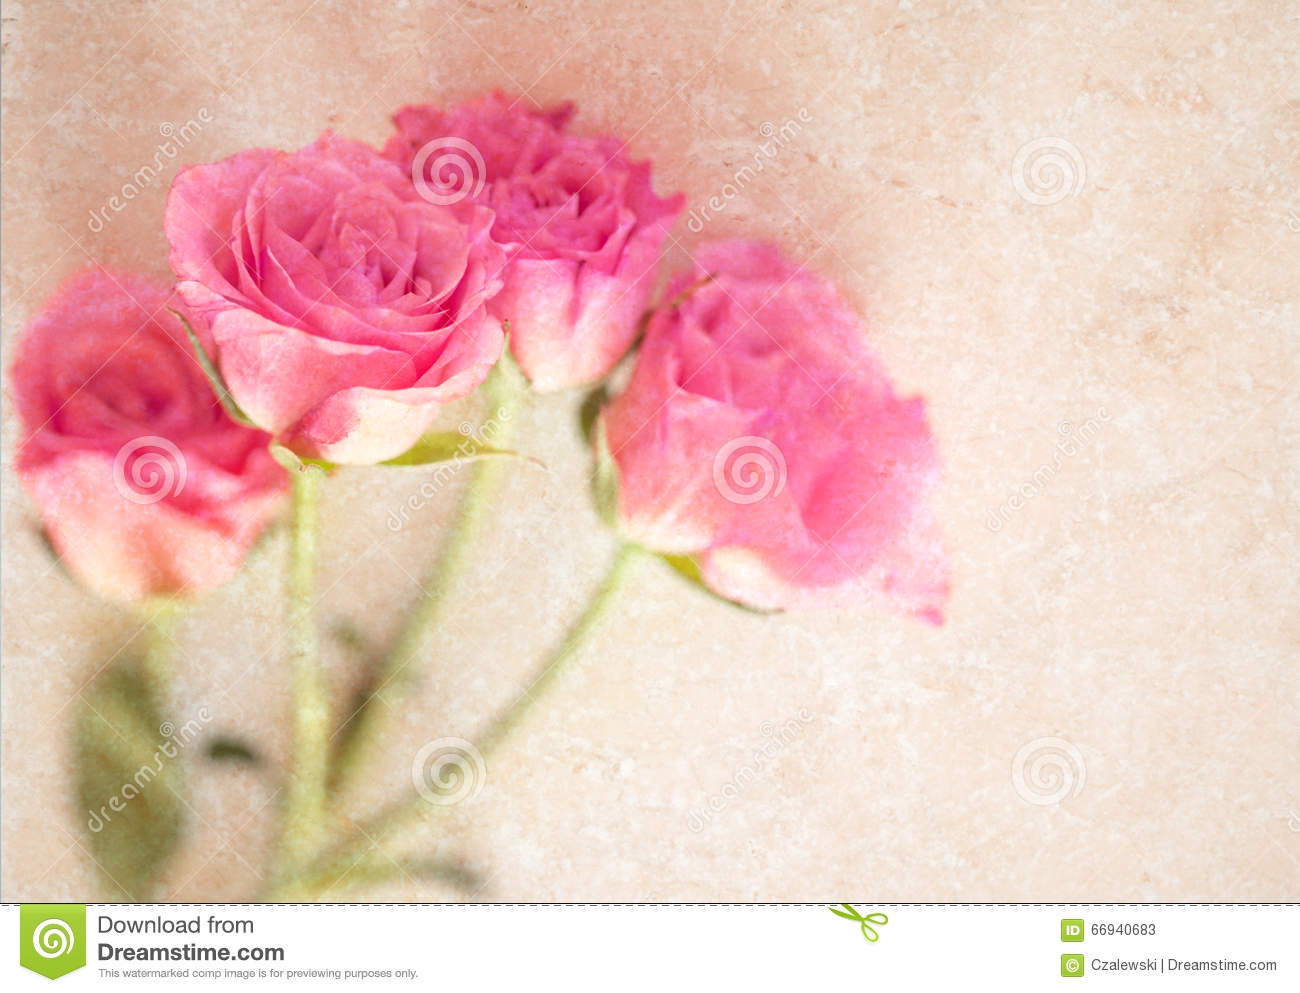 Download Wallpaper Marble Collage - pink-rose-marble-collage-background-stone-natural-66940683  Collection_791521.jpg